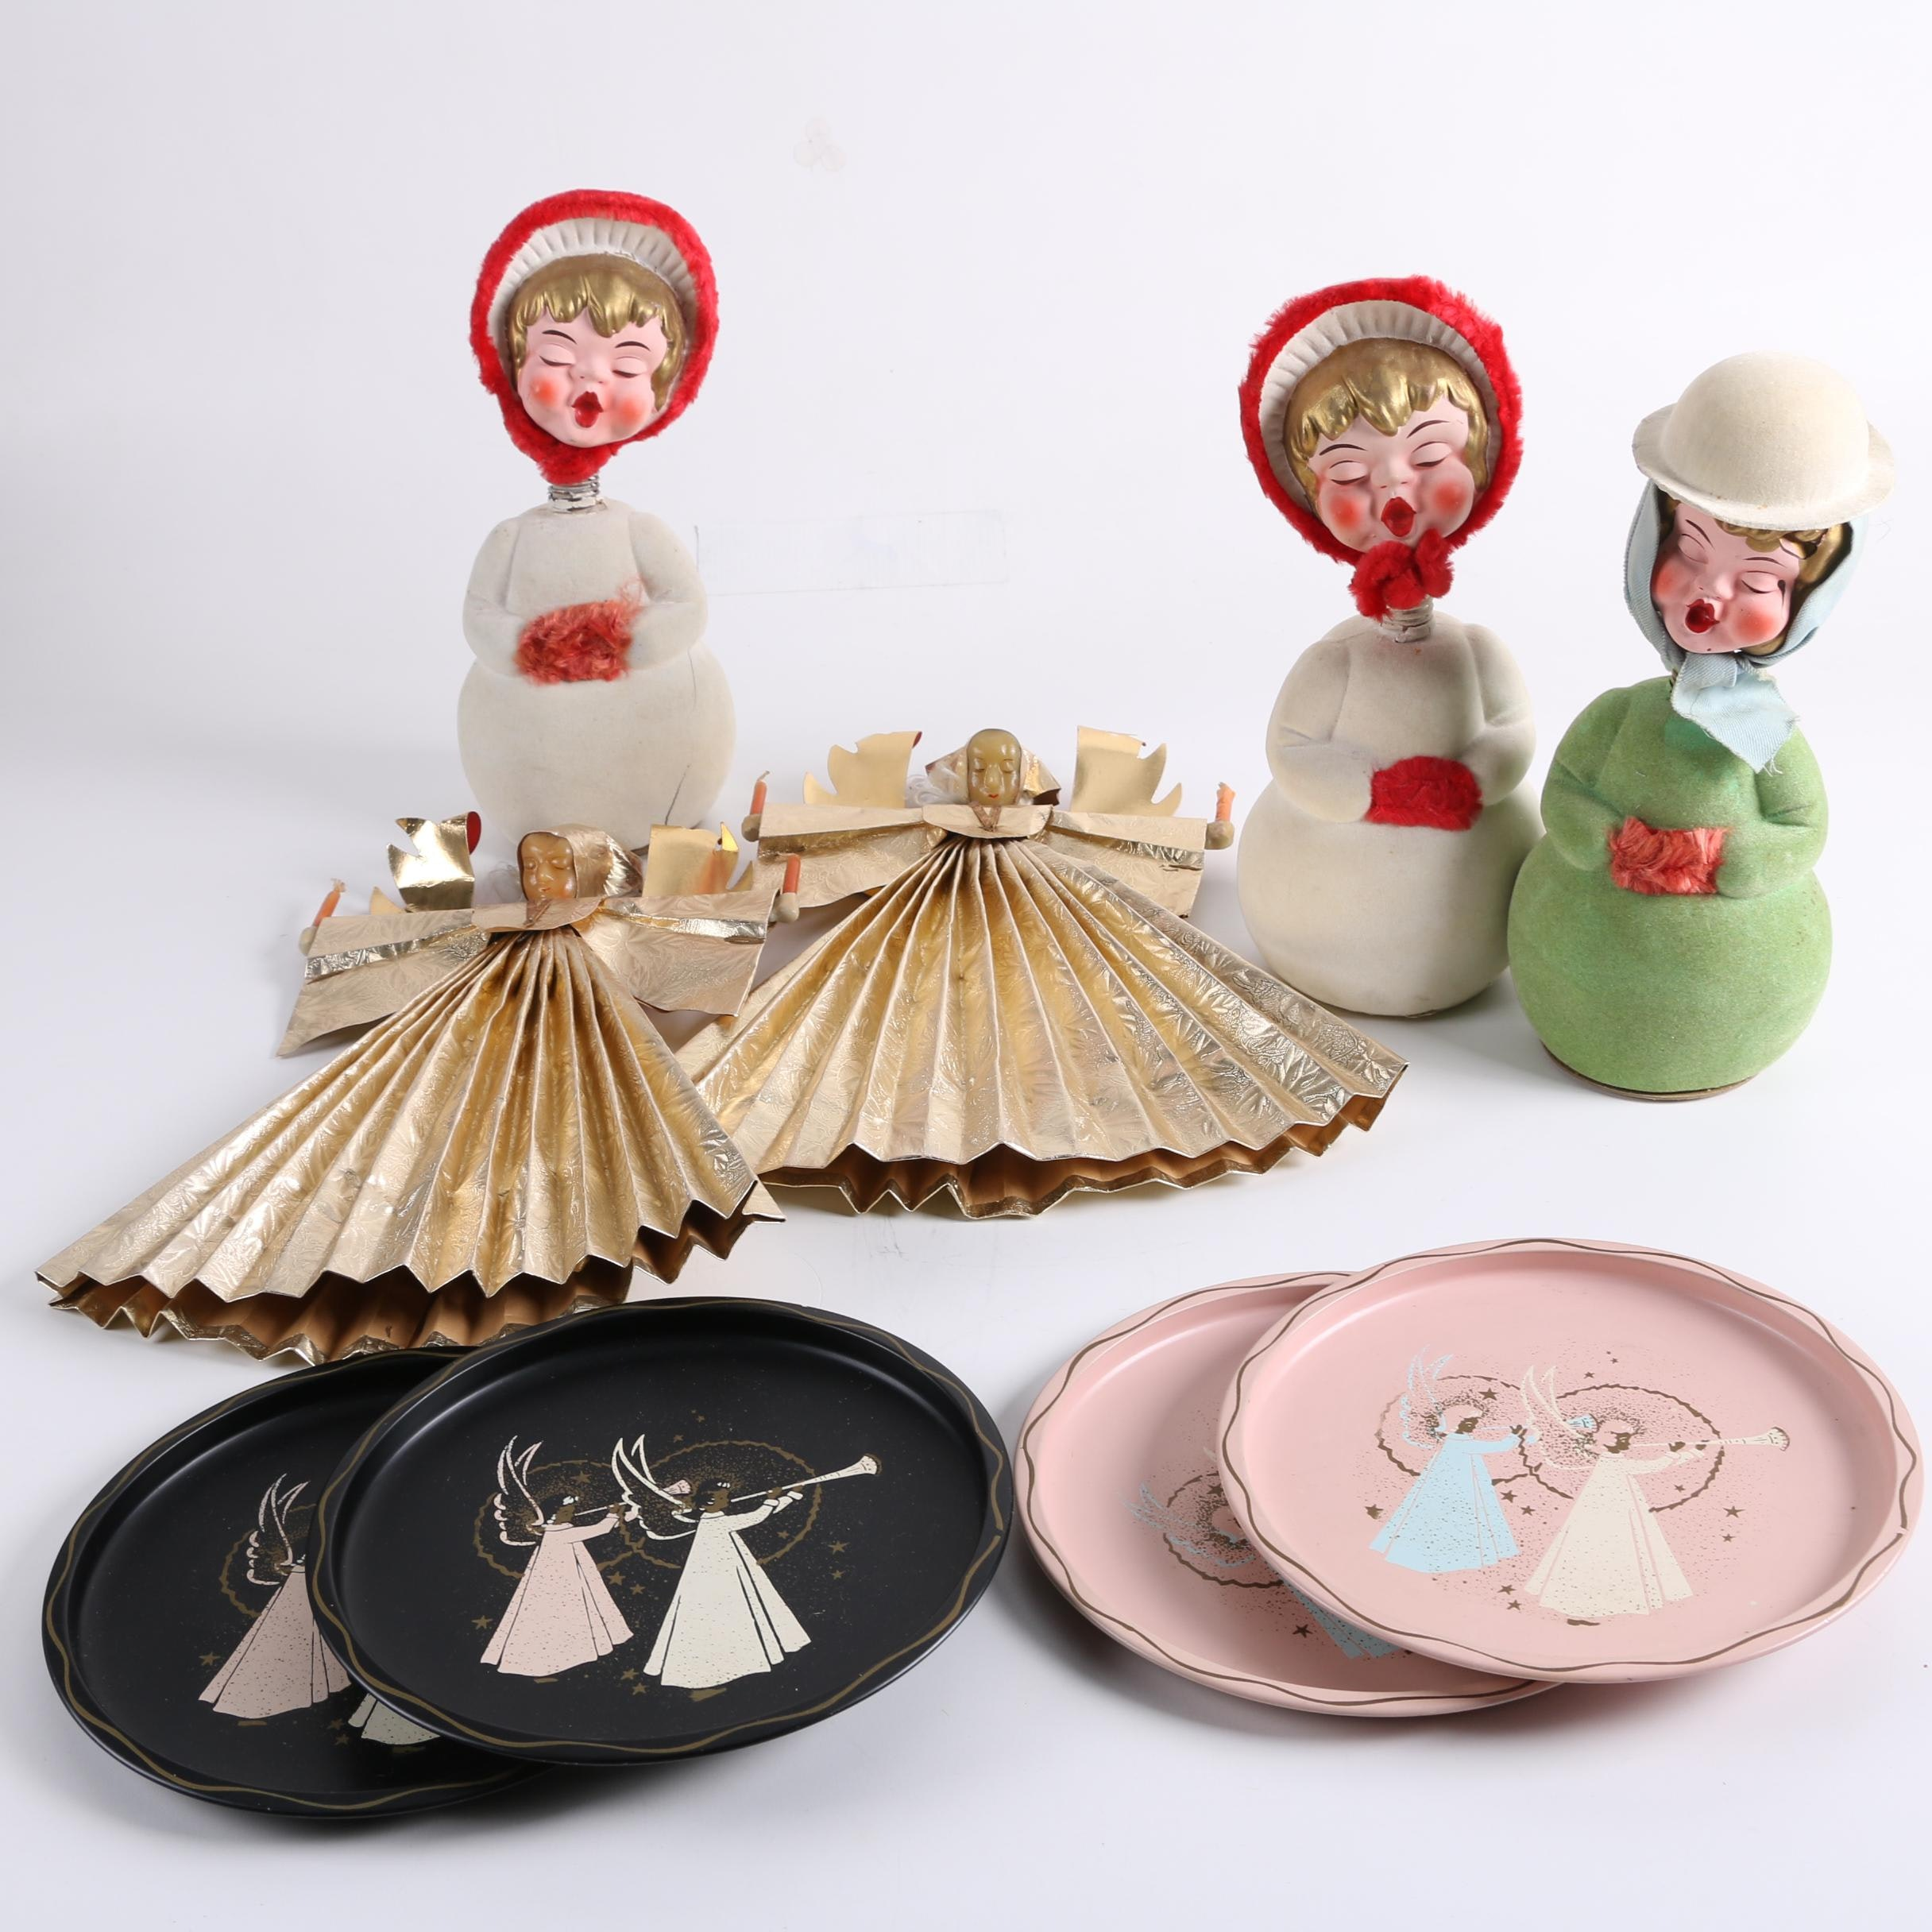 Holiday Figurines, Bobble Heads and Plates